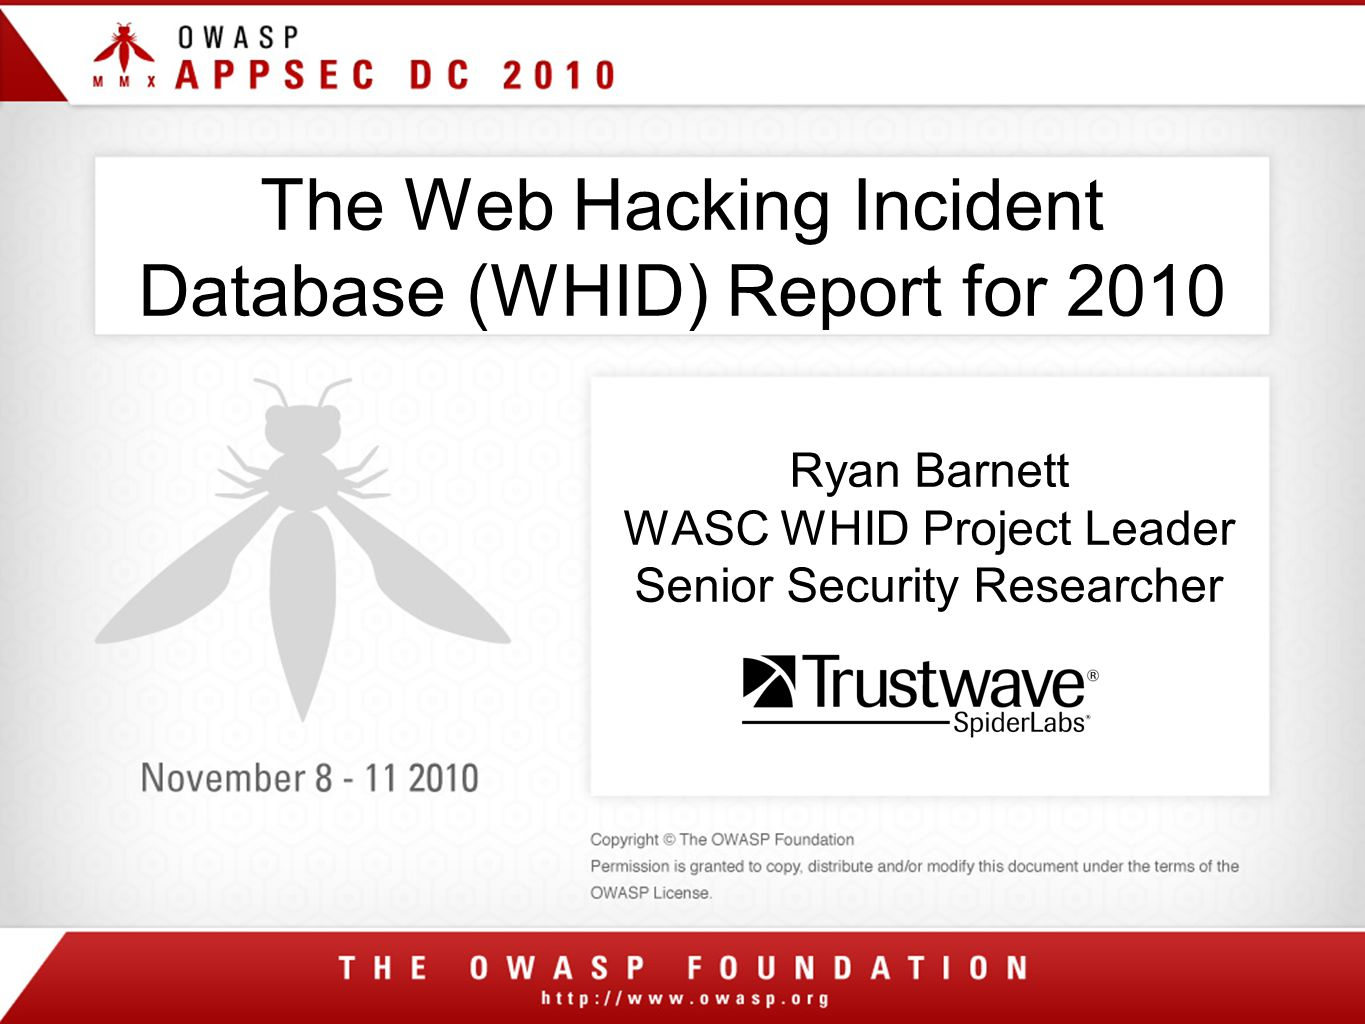 Web Hacking Incident Database (WHID)